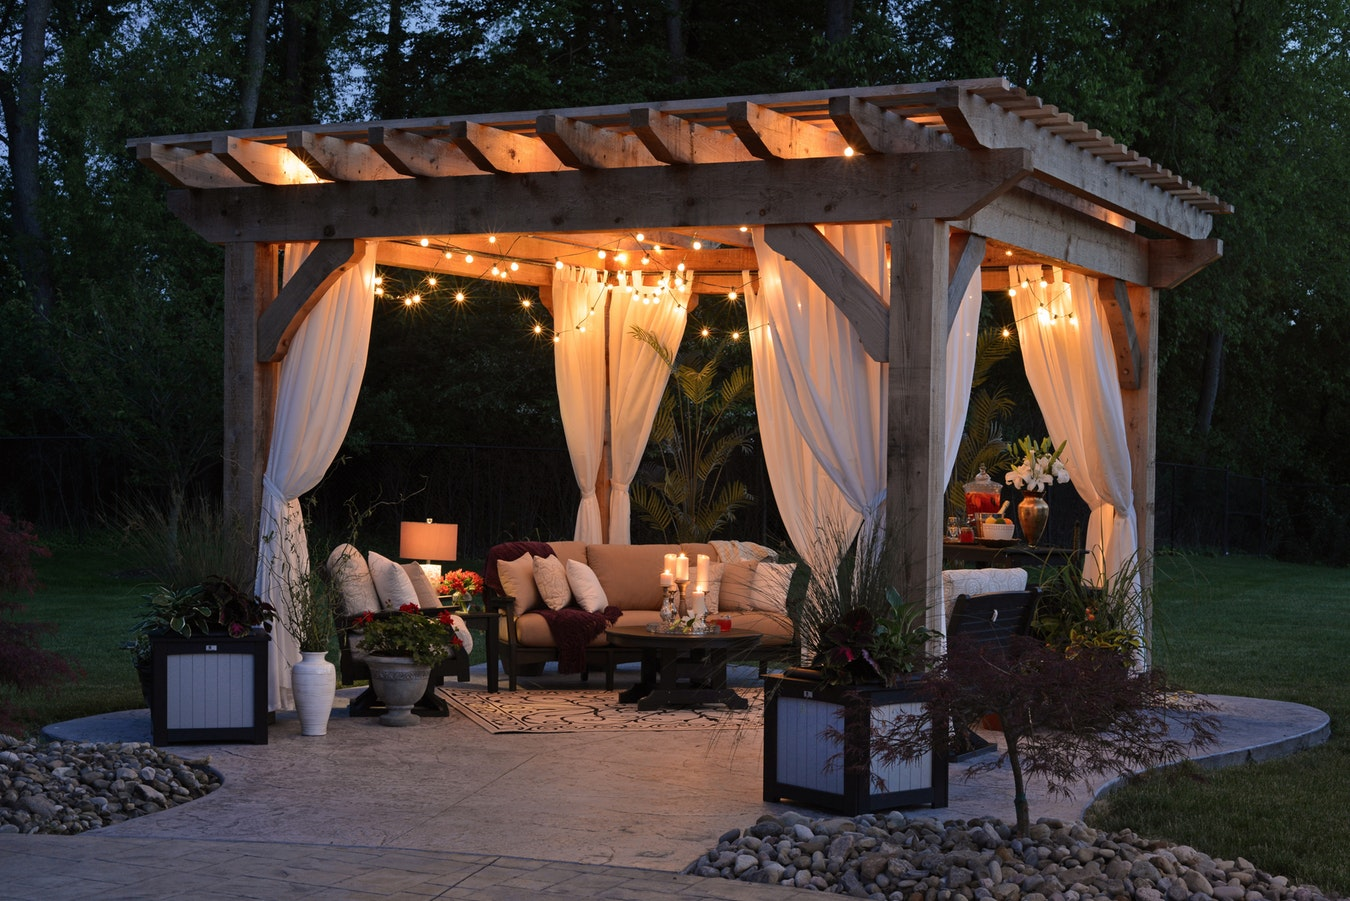 Summer Canopy Lit Using LEDs